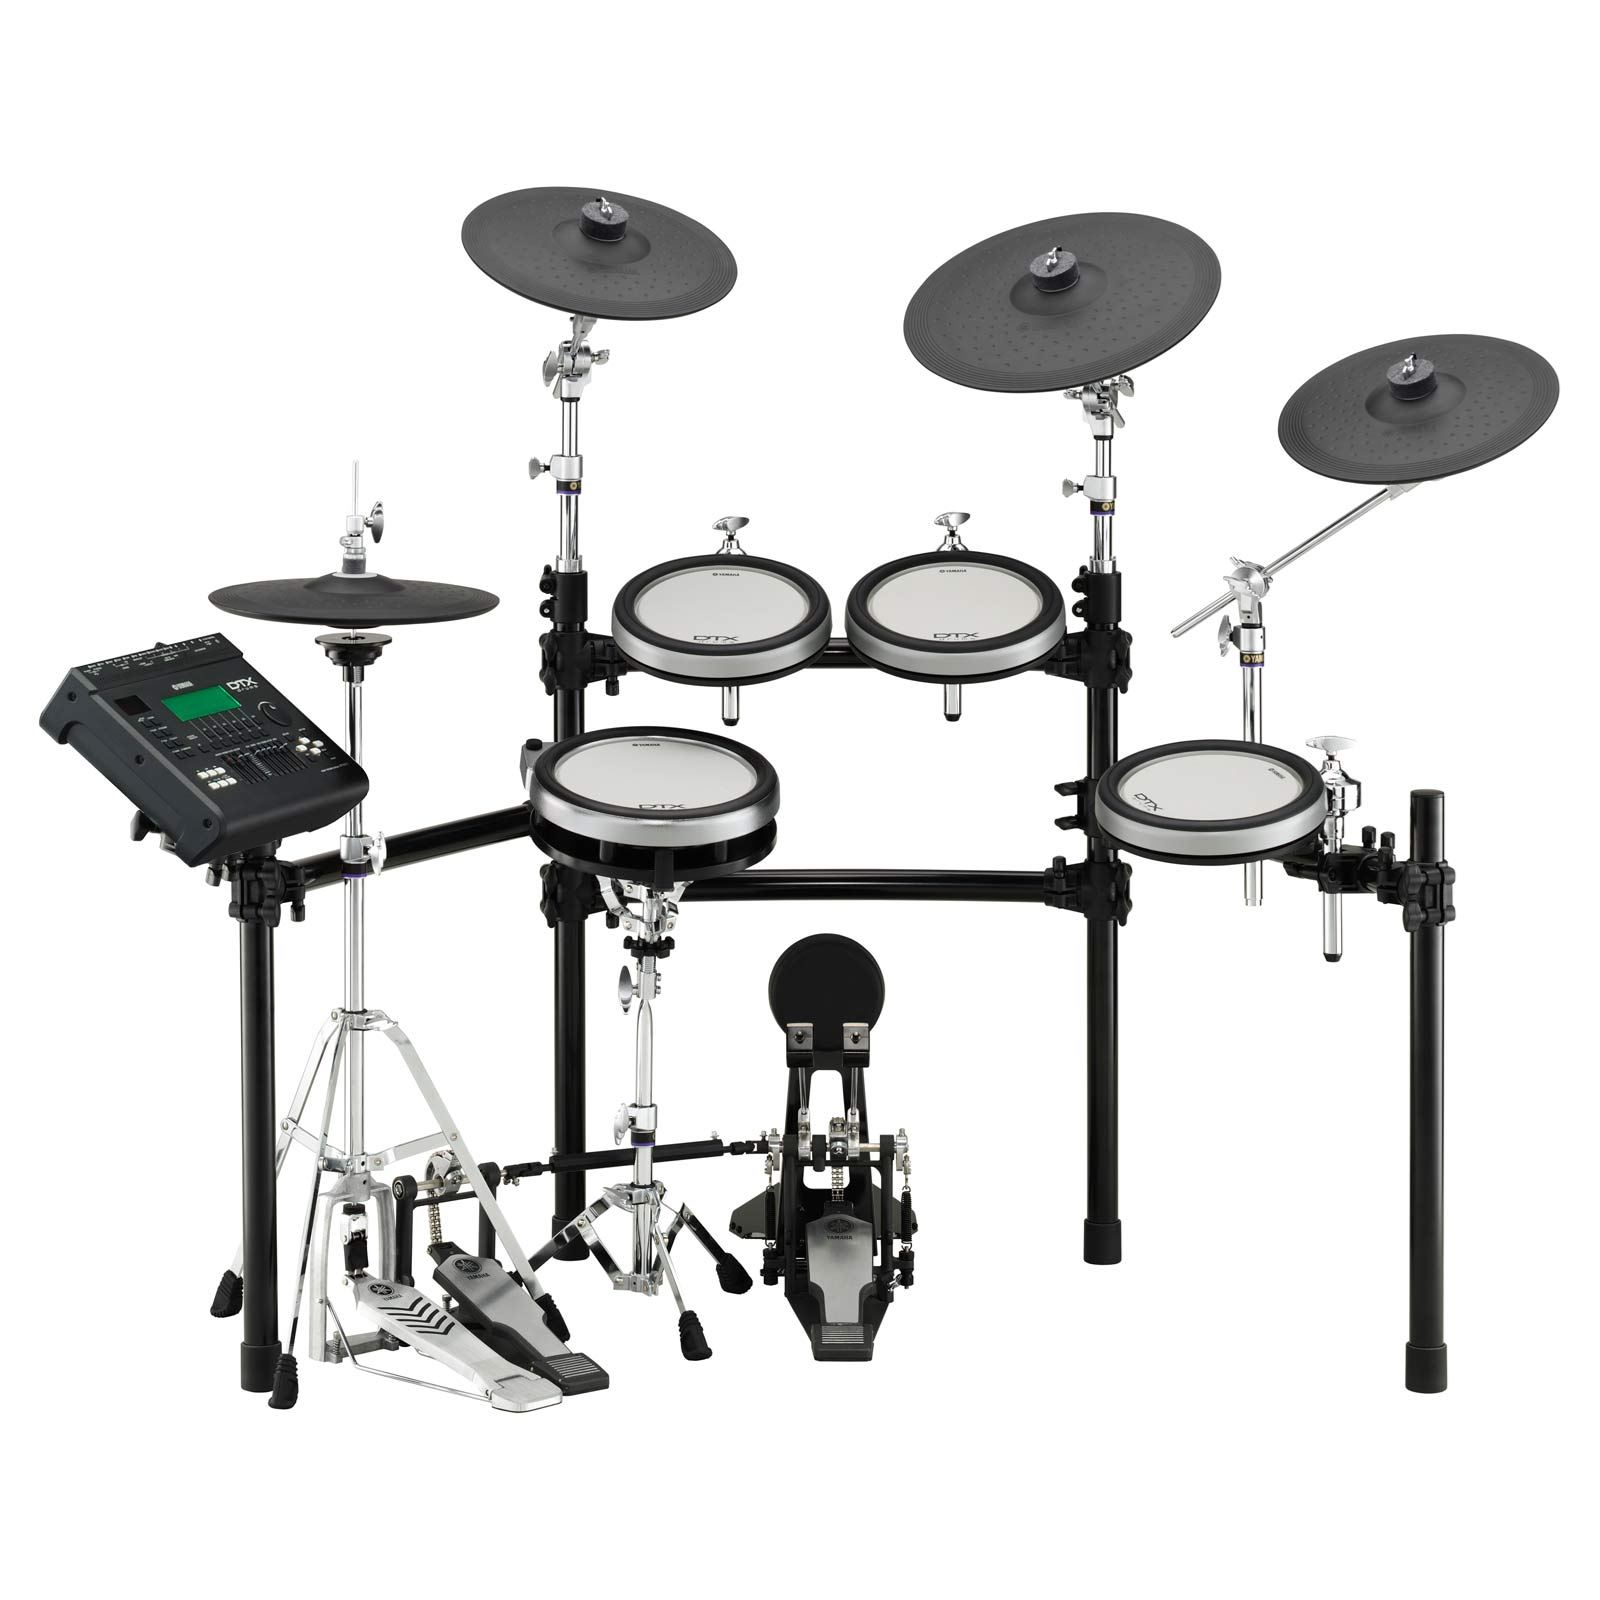 Yamaha Dtx9750k Electronic Drum Kit With Hi Hat Control Perth